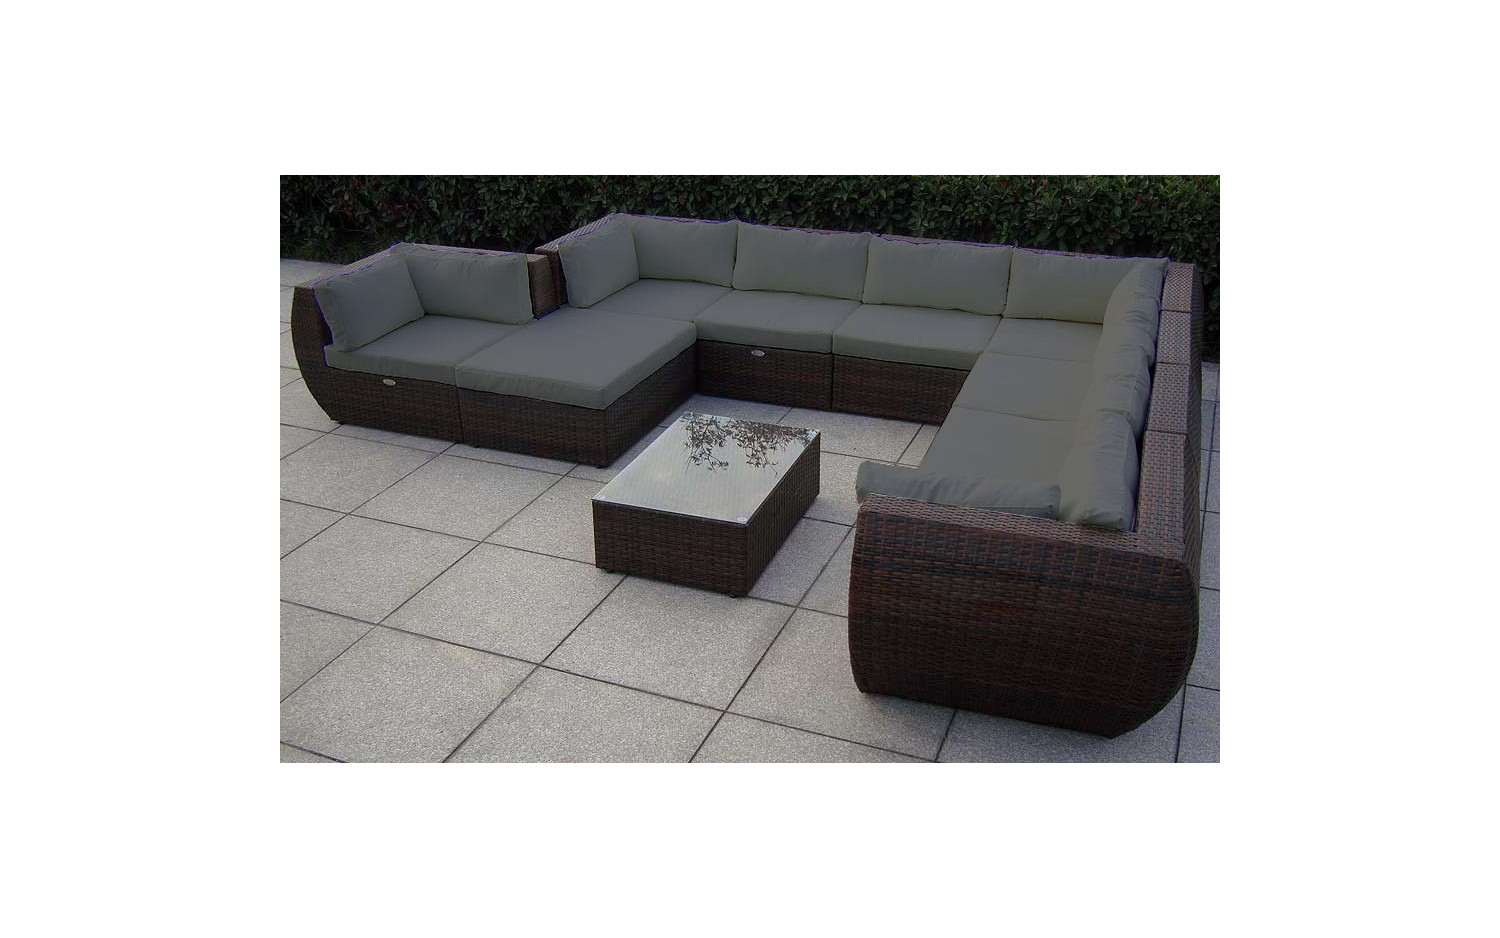 Best Baidani Rattan Garten Lounge Garnitur Extreme With Lounge Garnitur  With Lounge Garnitur Polyrattan